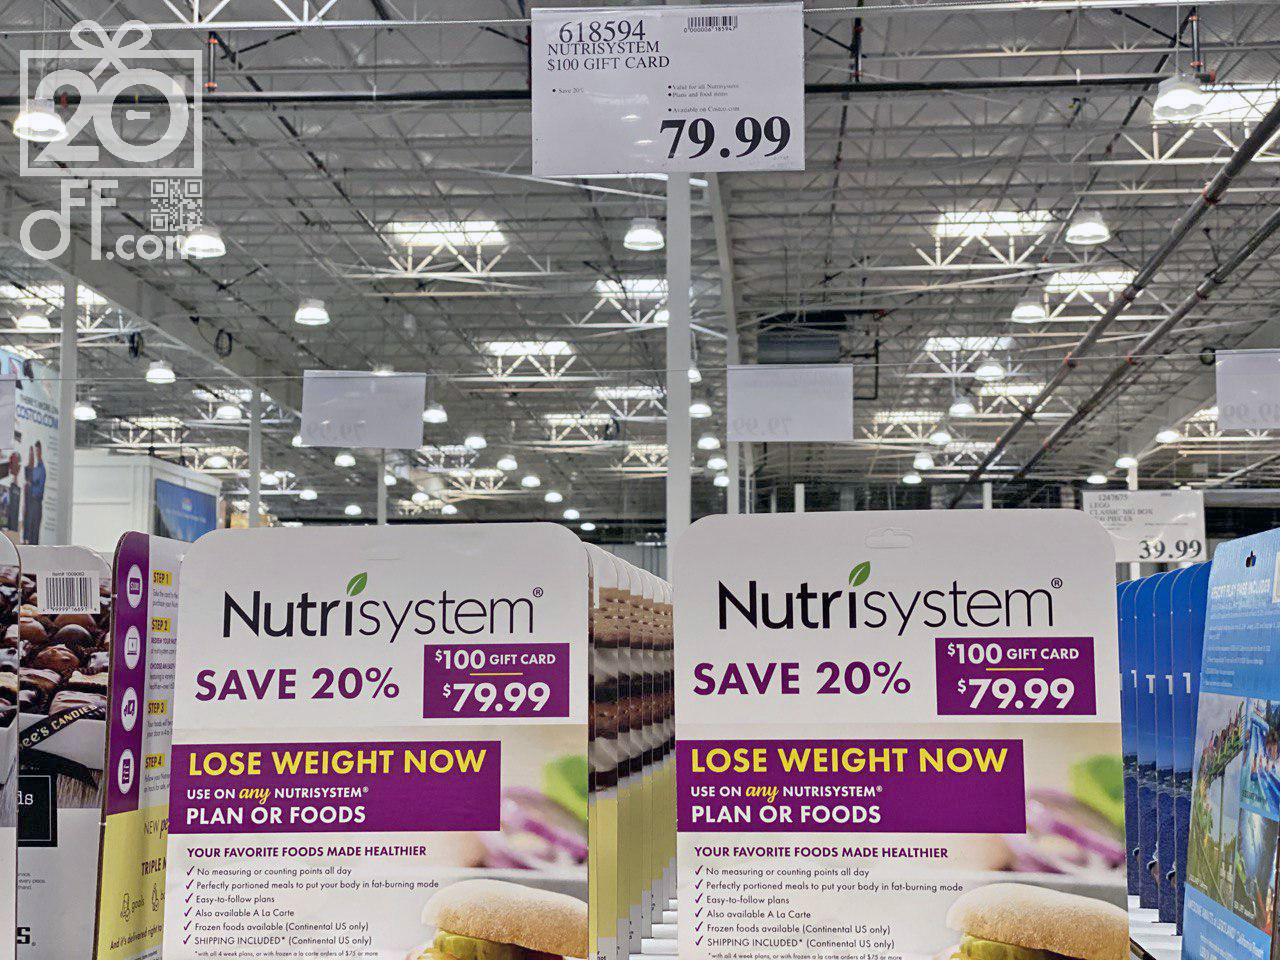 NutriSystem 20% off Costco Coupon